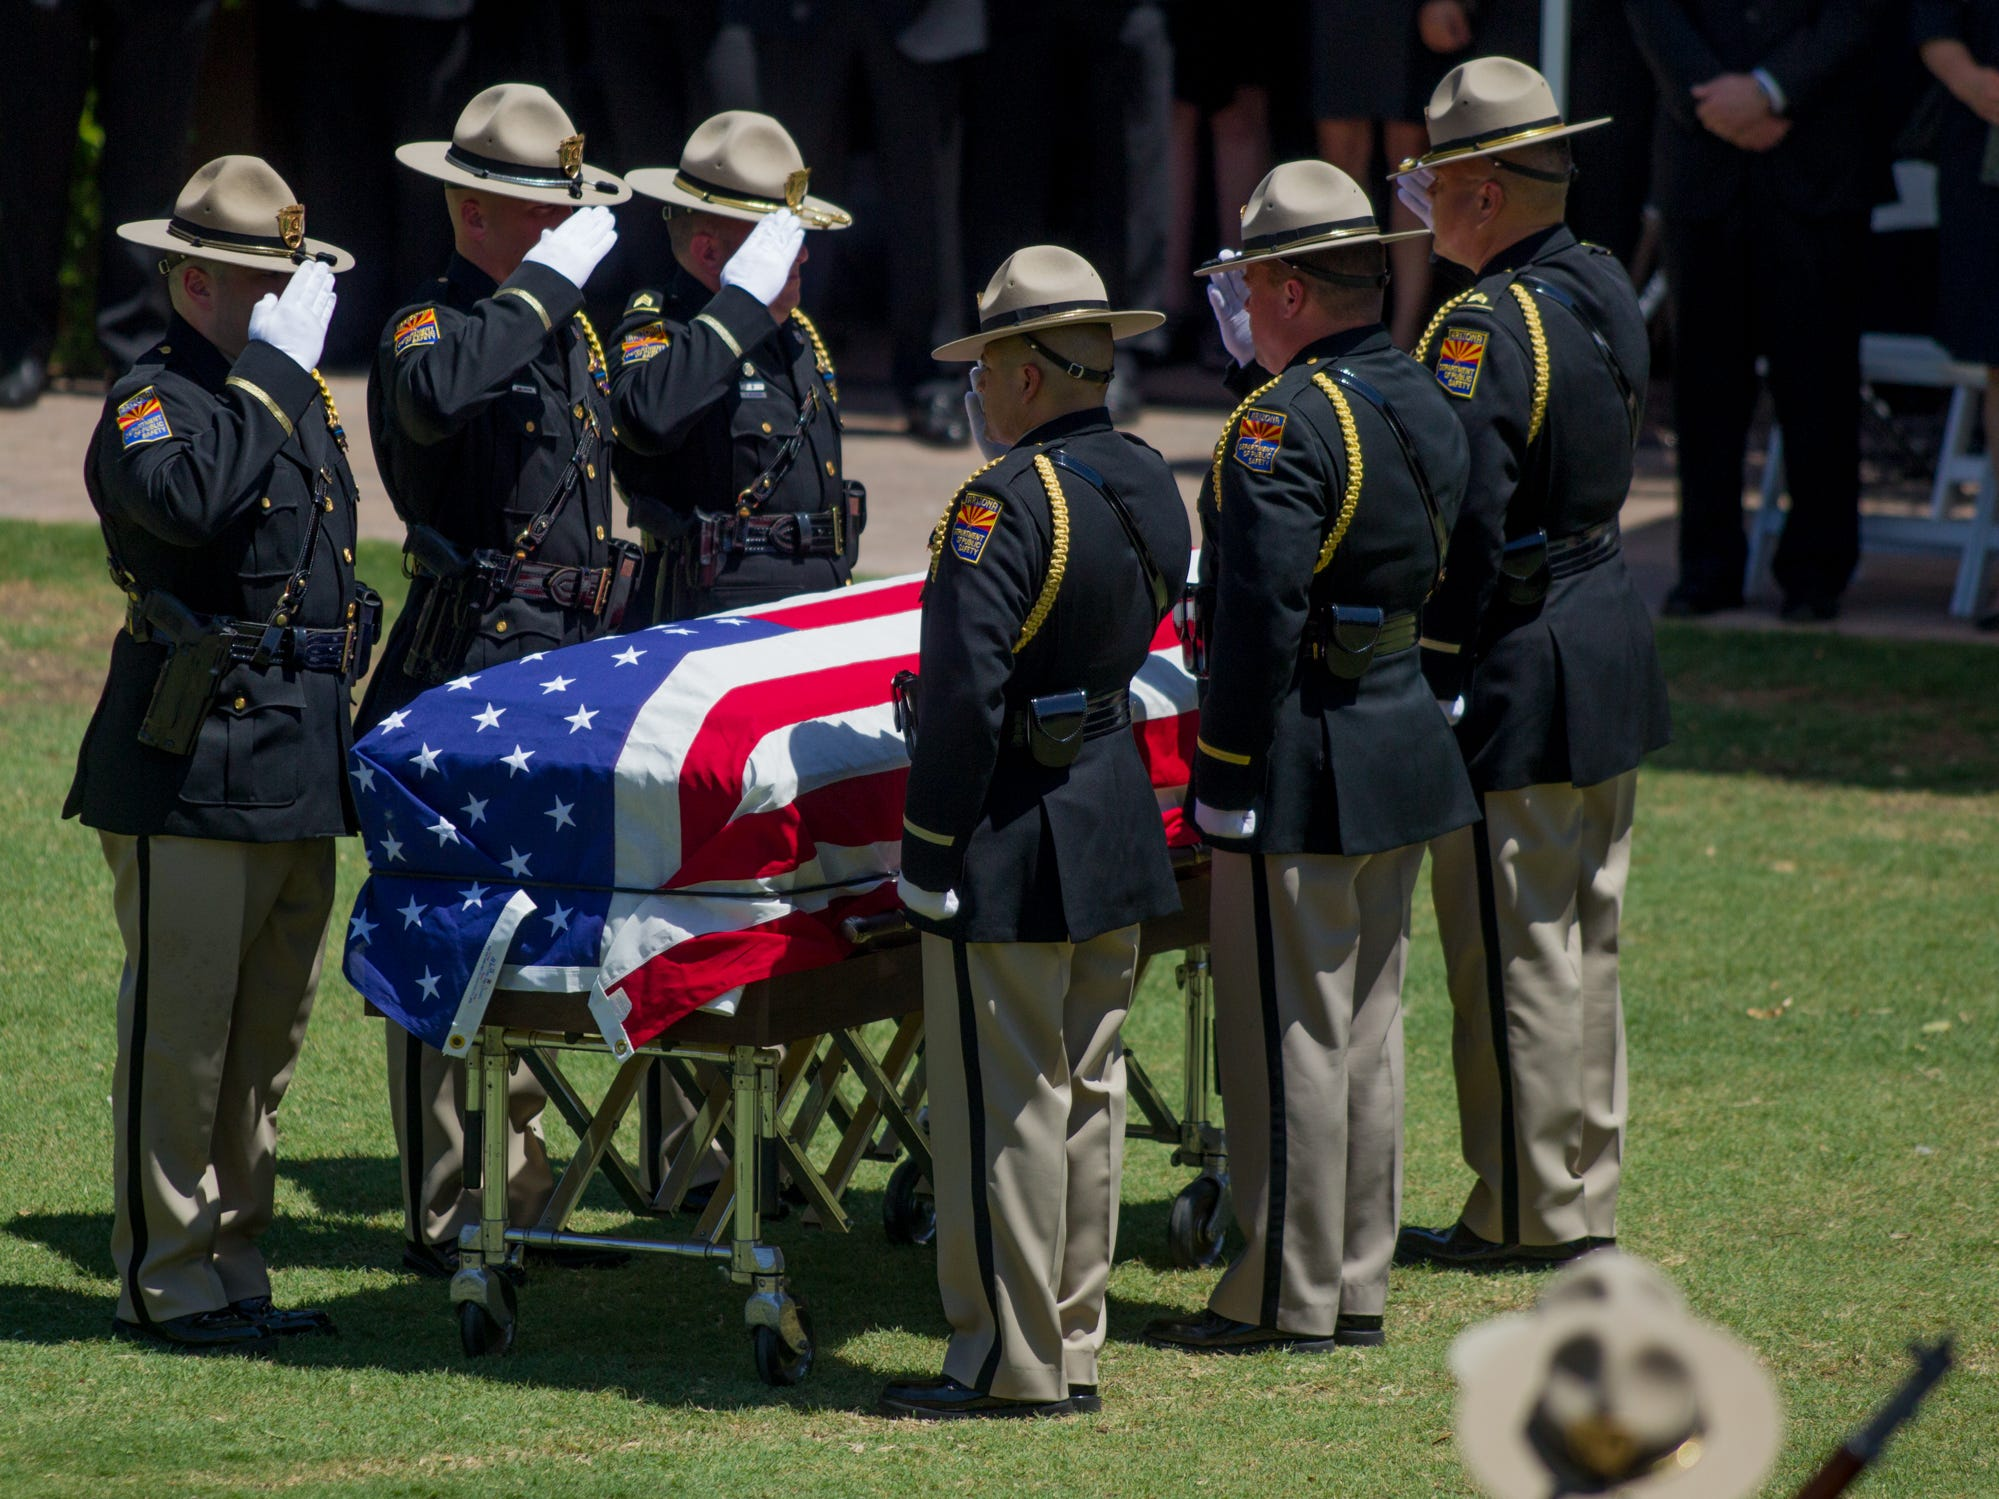 Attendants fold the flag on Aug. 3, 2018, during the funeral for fallen DPS Trooper Tyler Edenhofer at Christ's Church of the Valley in Peoria.